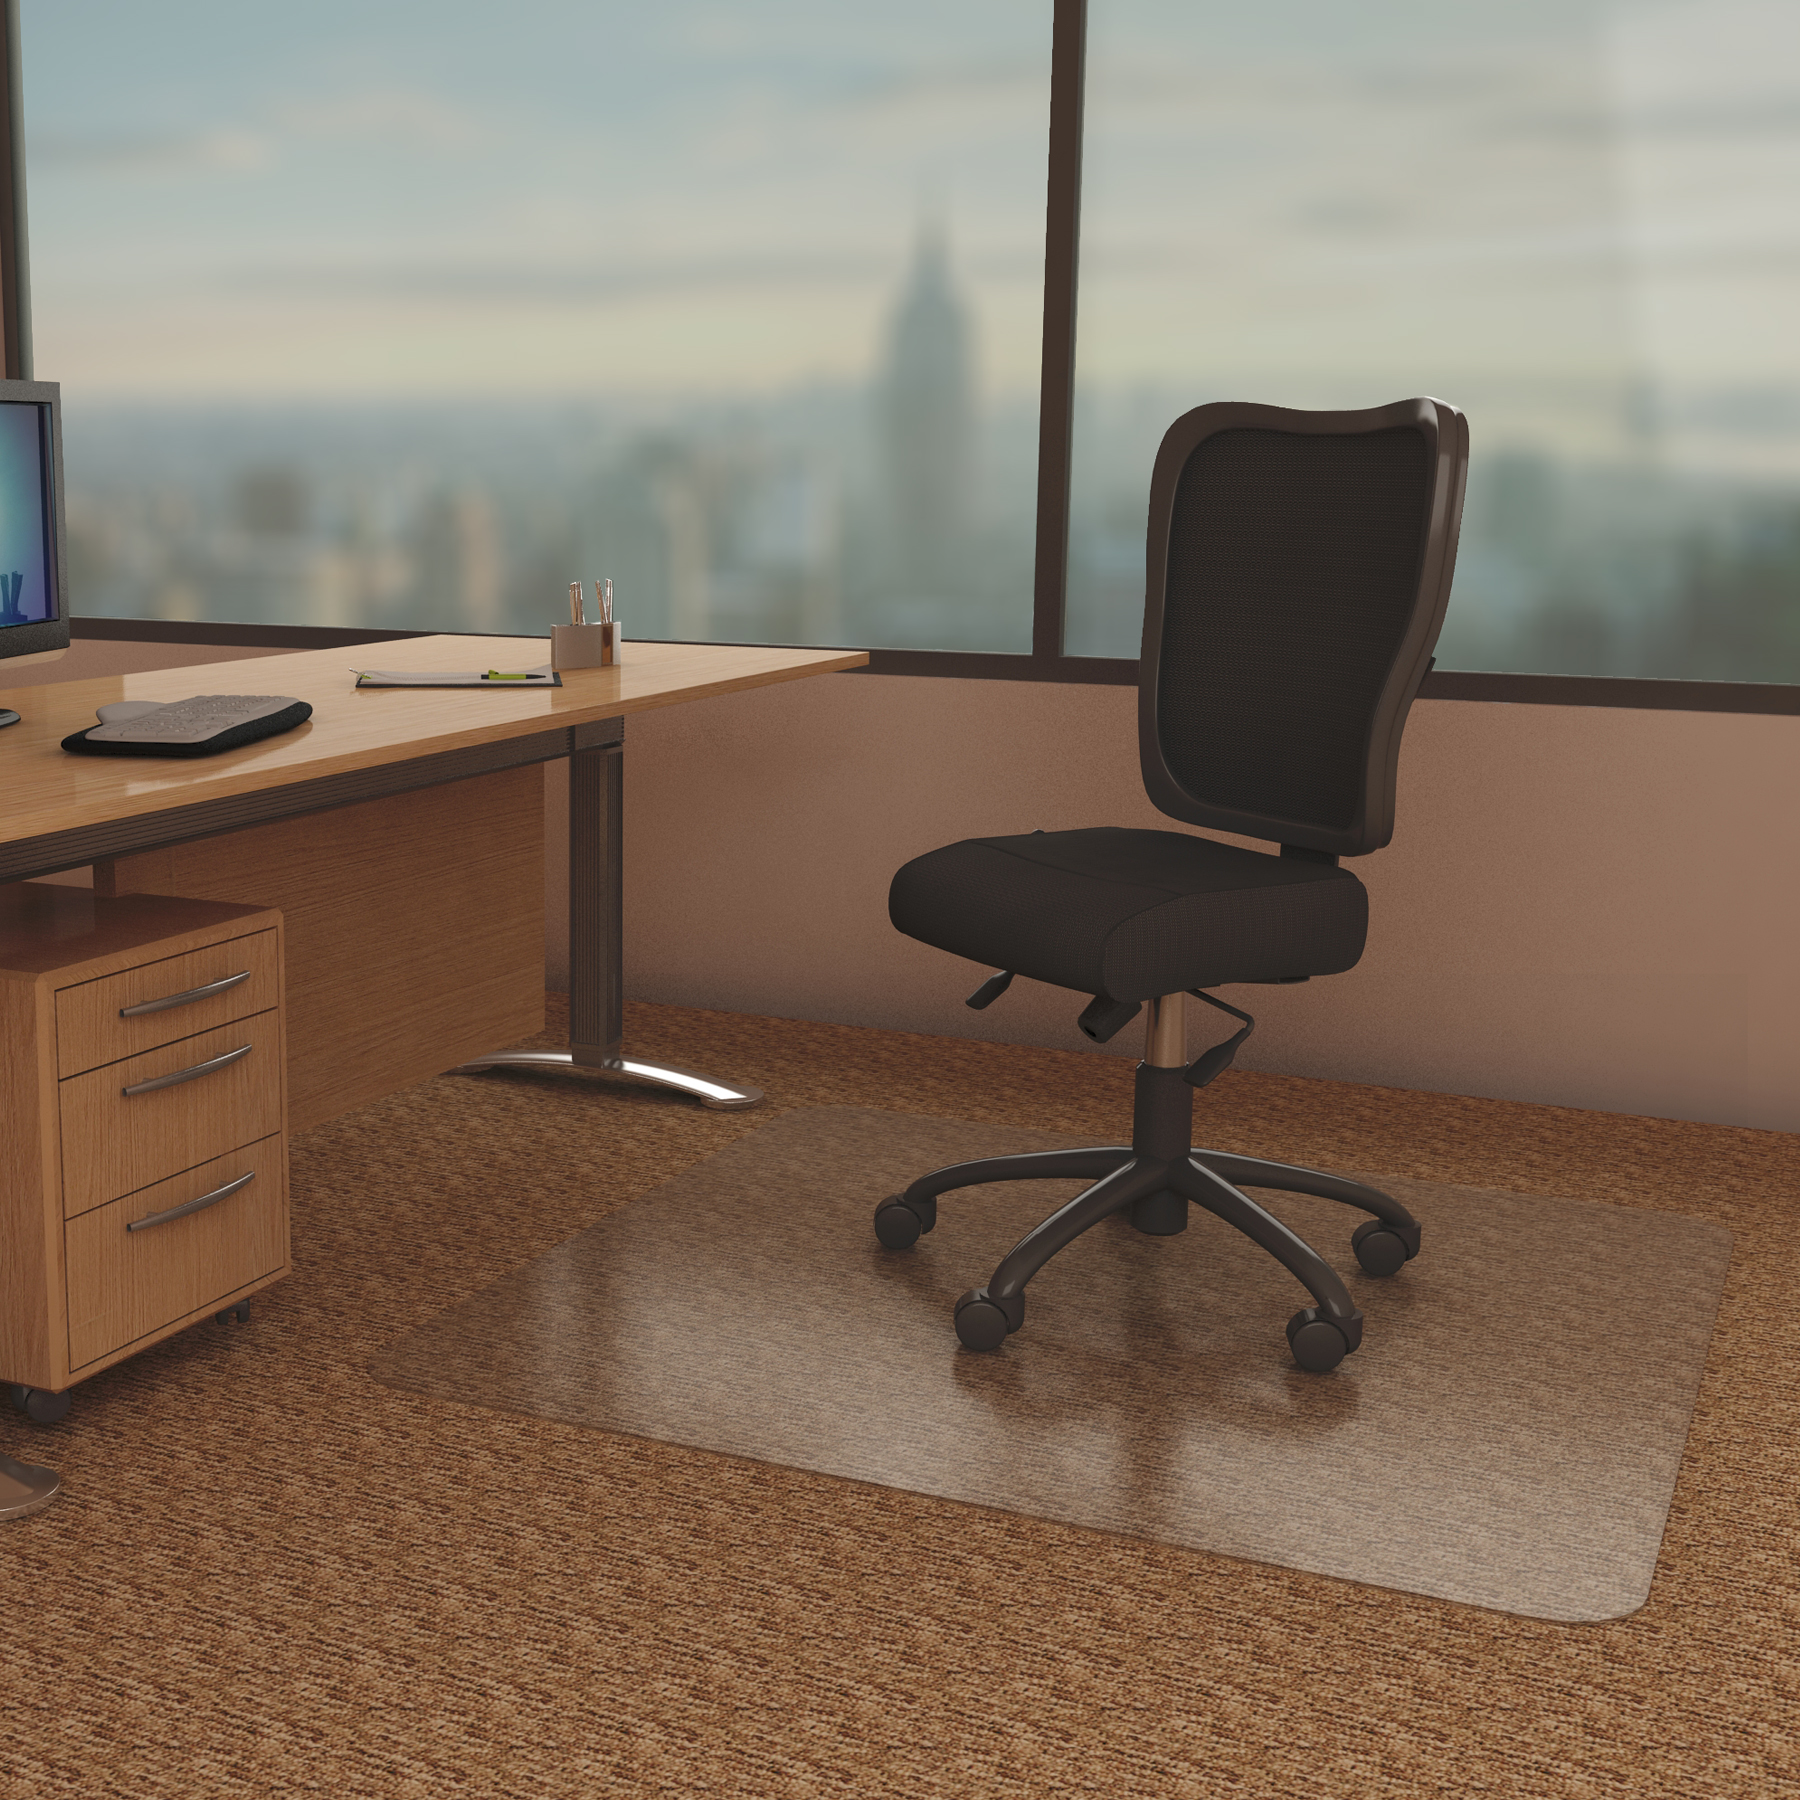 Anchormat 145 Best Chair Mat For Low Pile Carpet